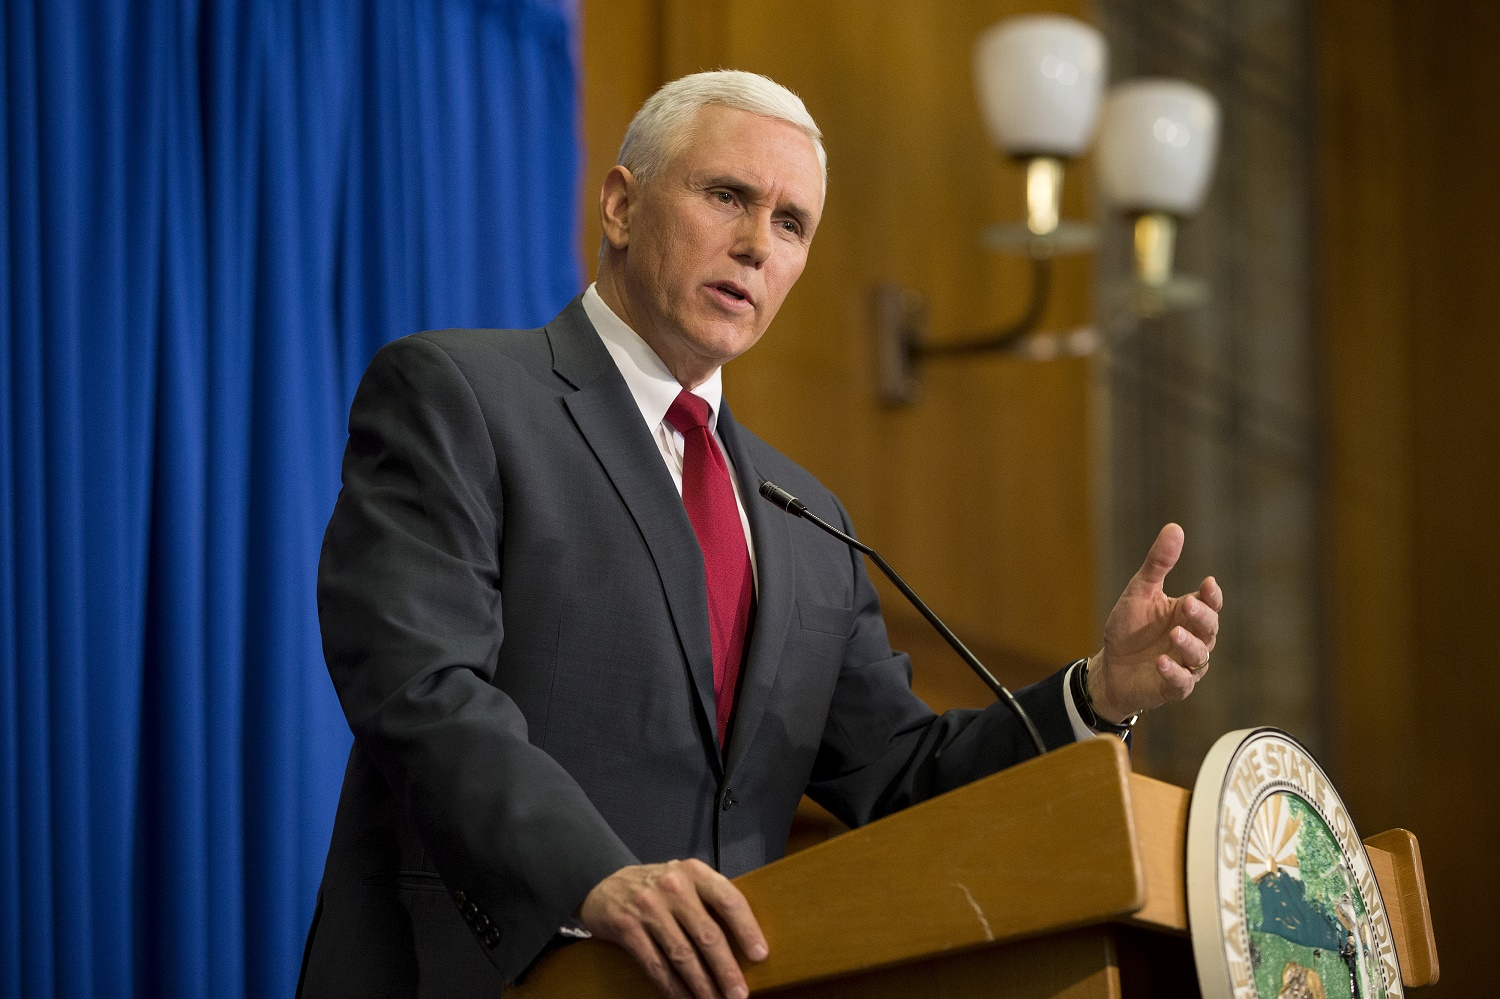 Watch: Indiana governor stumped by 'yes or no' question on gays getting fired